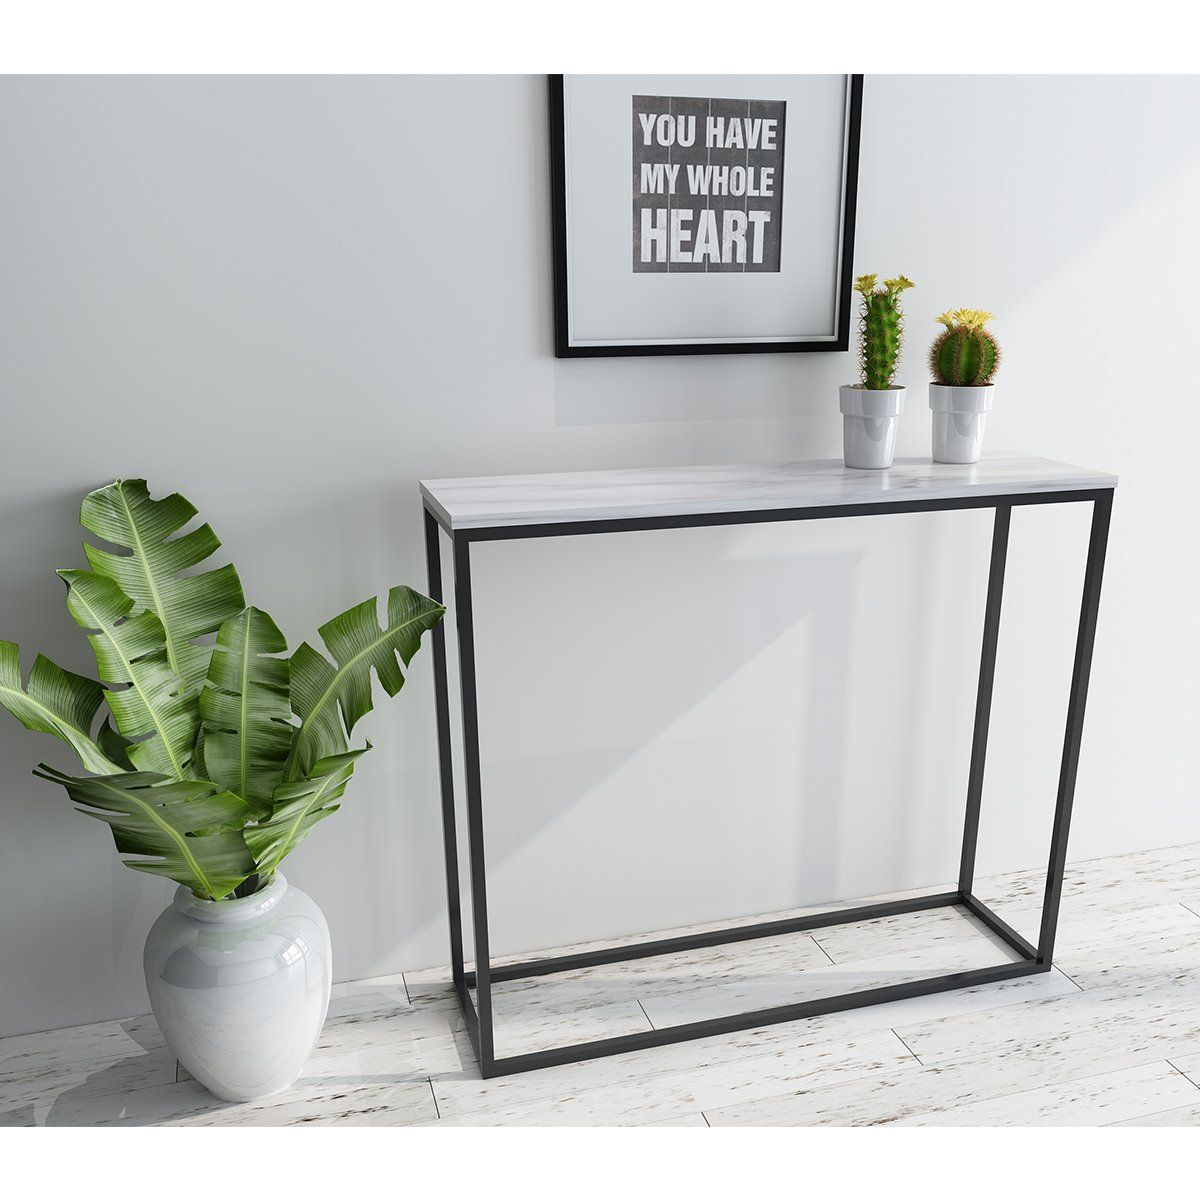 Amazon Com Roomfitters Sofa Console Table Marble Print Top Metal Frame Accent White Narrow Foyer Hall Table Wh Marble Tables Design Hall Table Foyer Table Diy